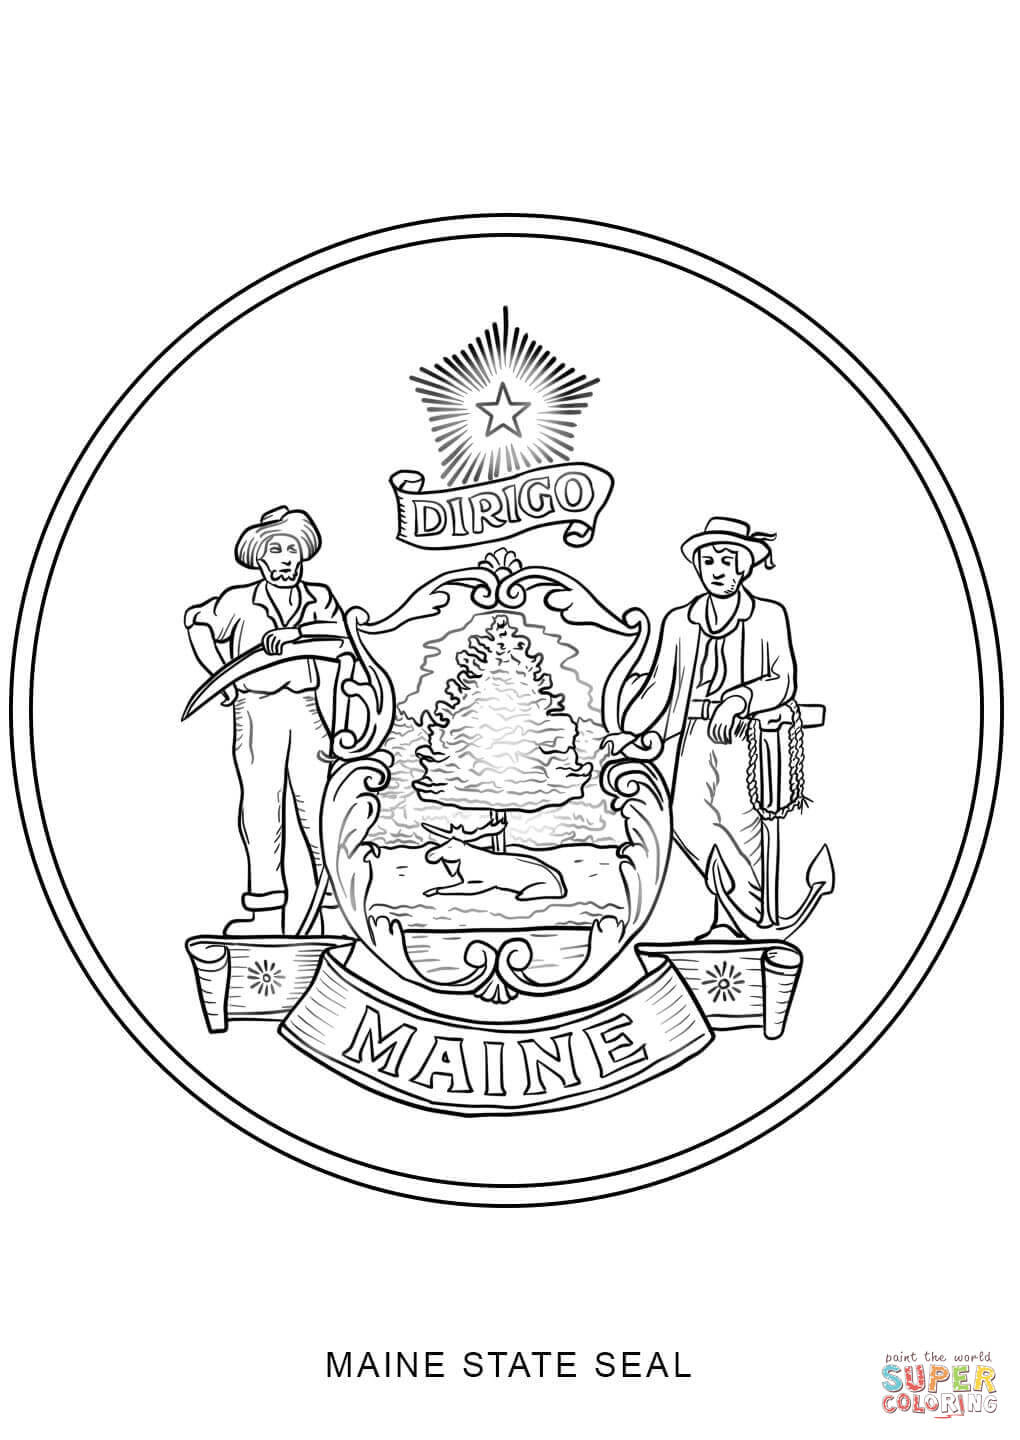 nc state seal coloring pages - photo#16